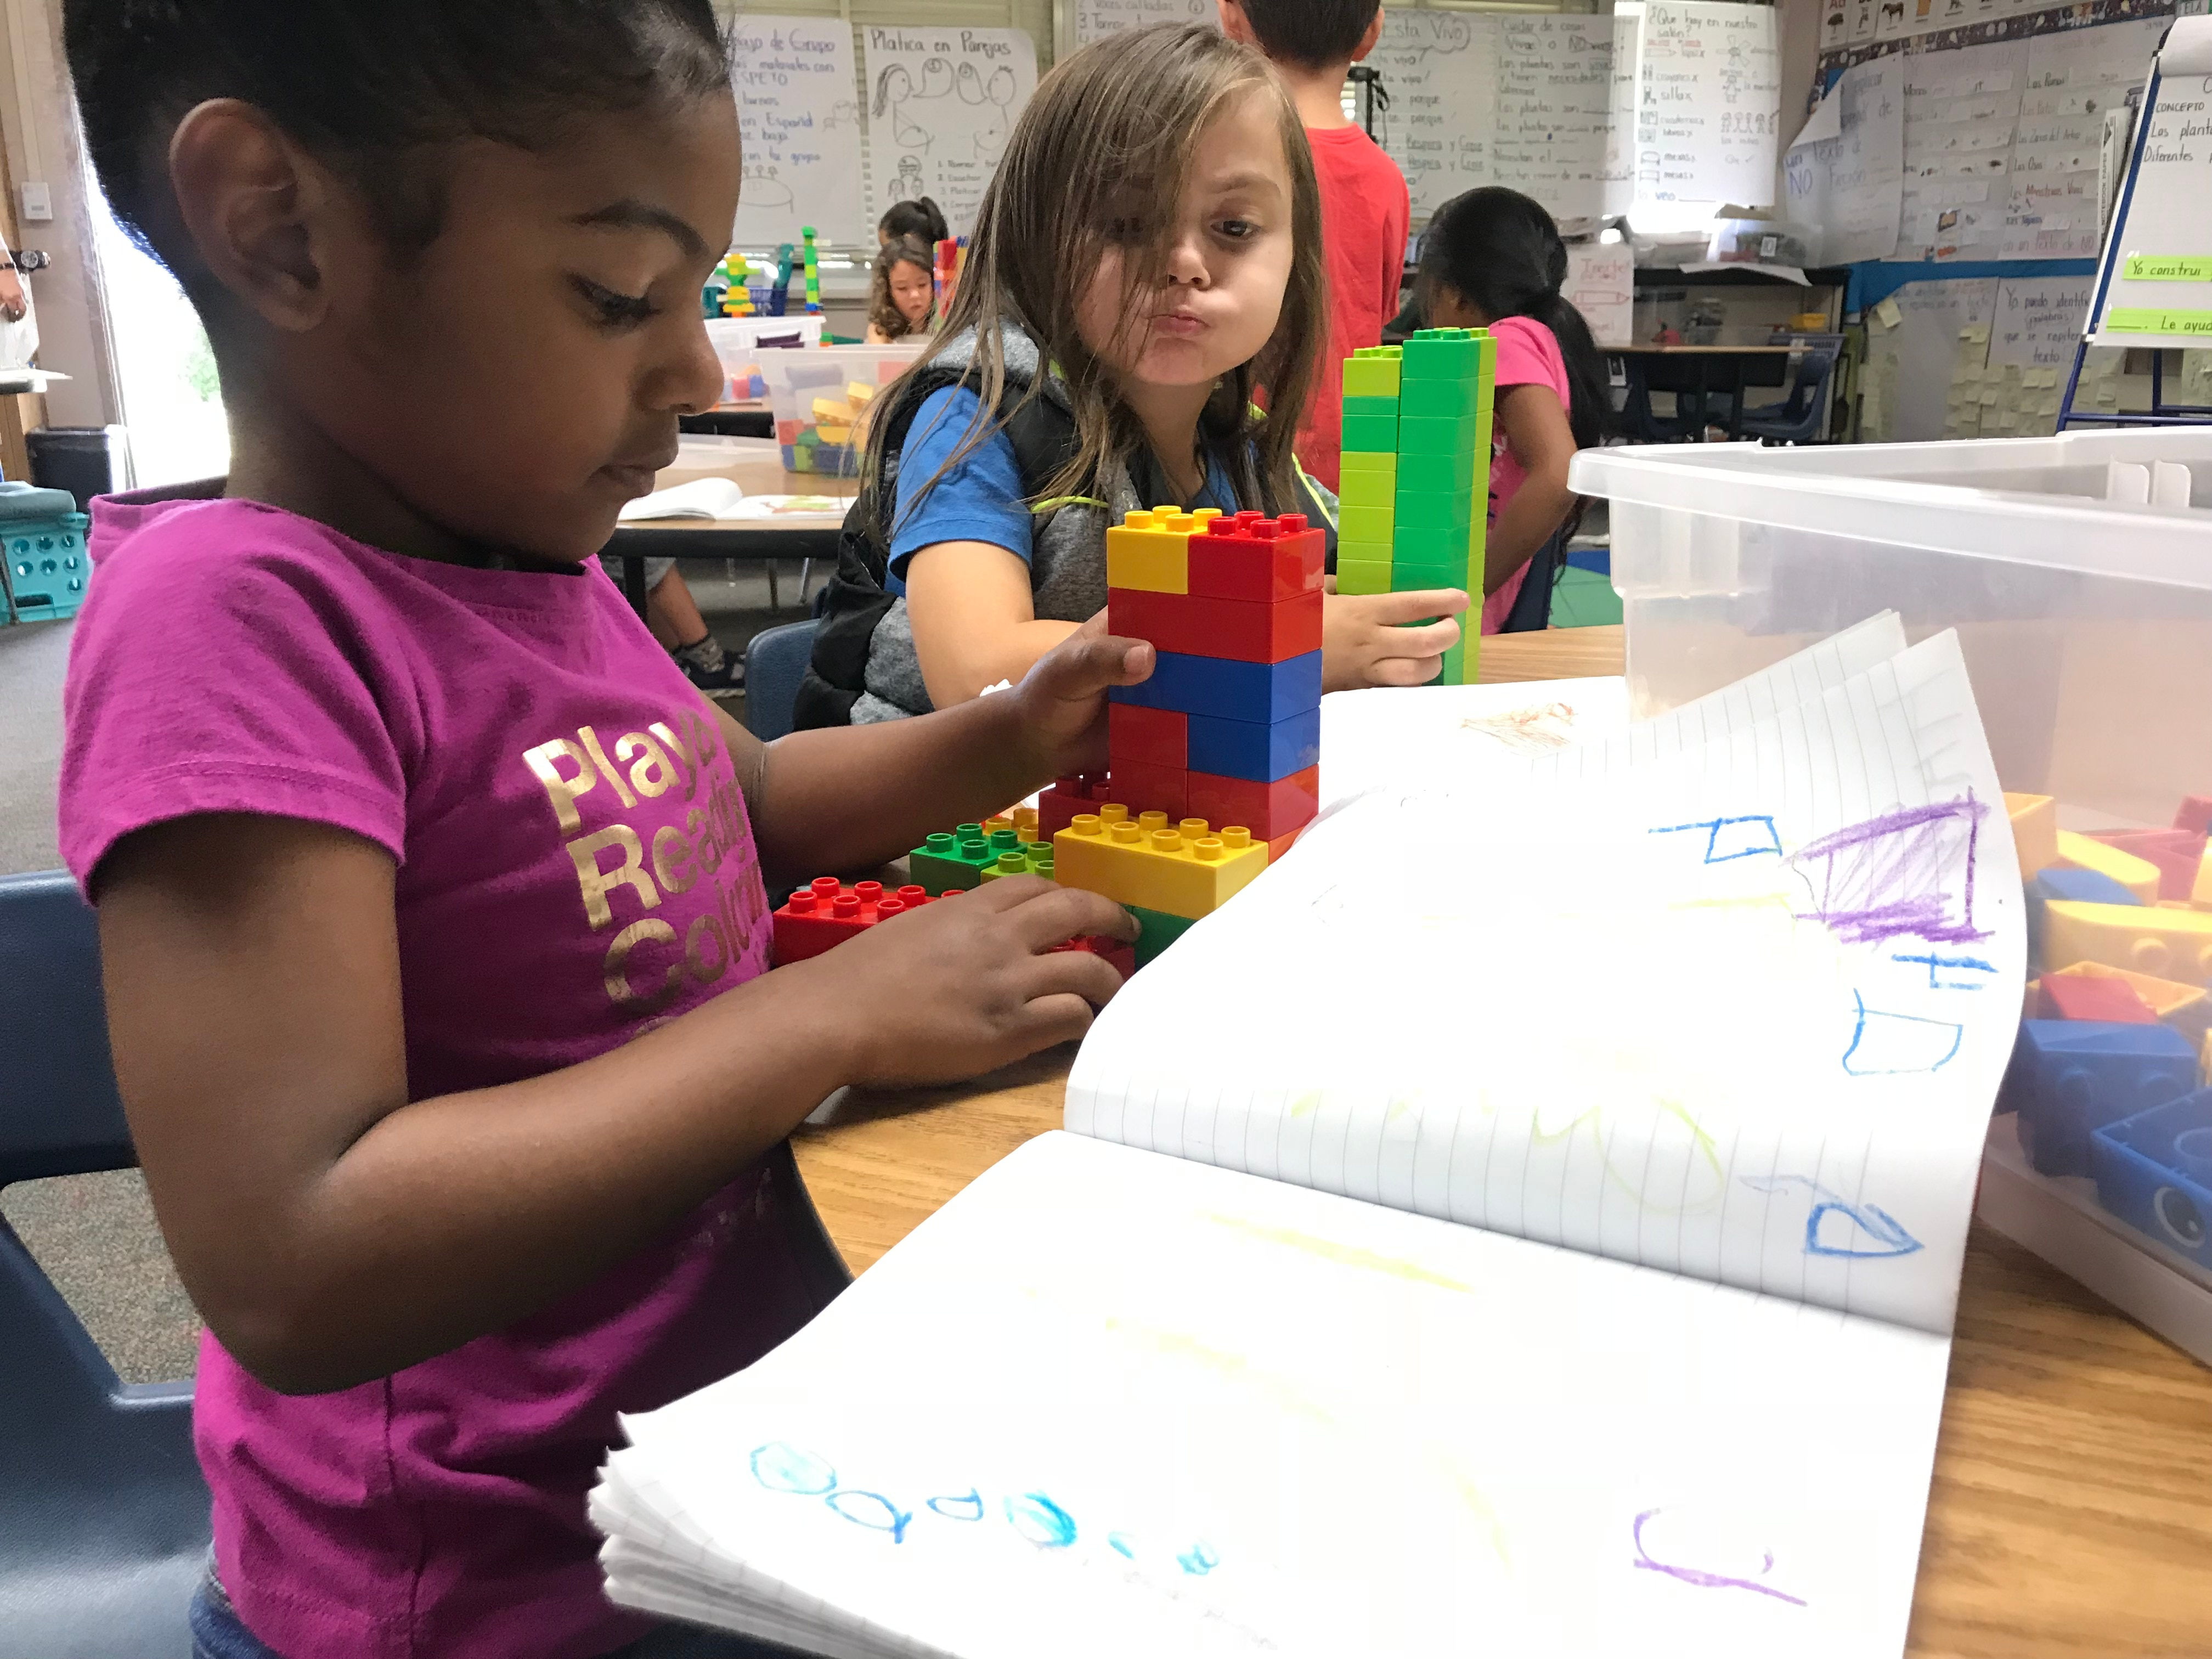 Young girl creating with LEGO Education's products. Another little girl is looking on.